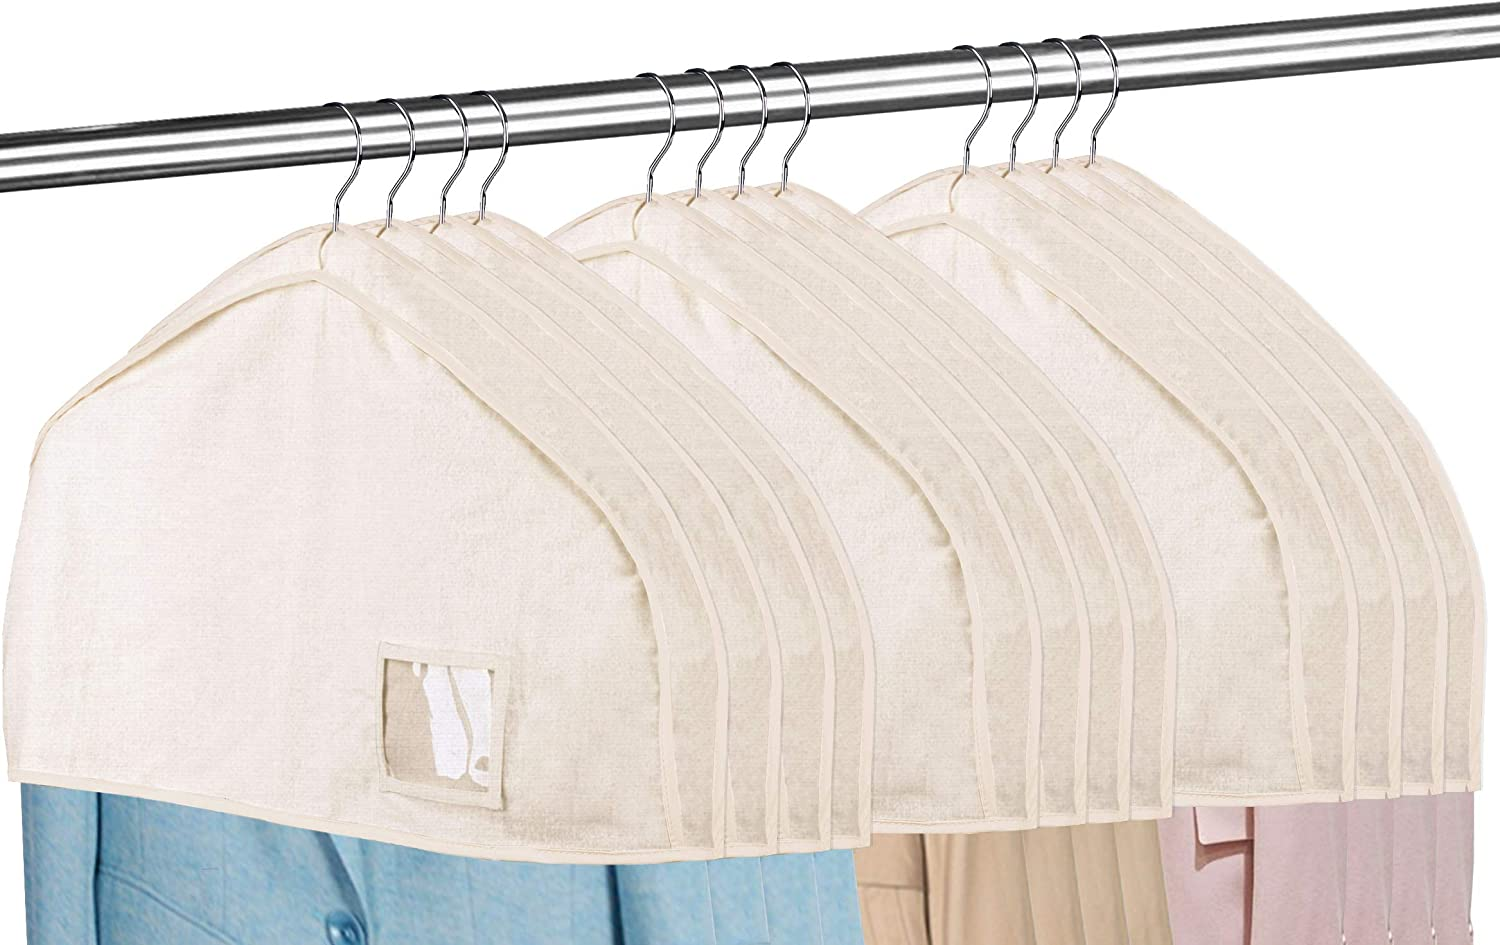 """MISSLO Cotton Shoulder Covers for Clothes Hanging Breathable Garment Bag Clothing Dust Protector Closet Storage with 2"""" Gusset for Suit, Jacket, Shirt, Coat, Dress (Set of 12)"""